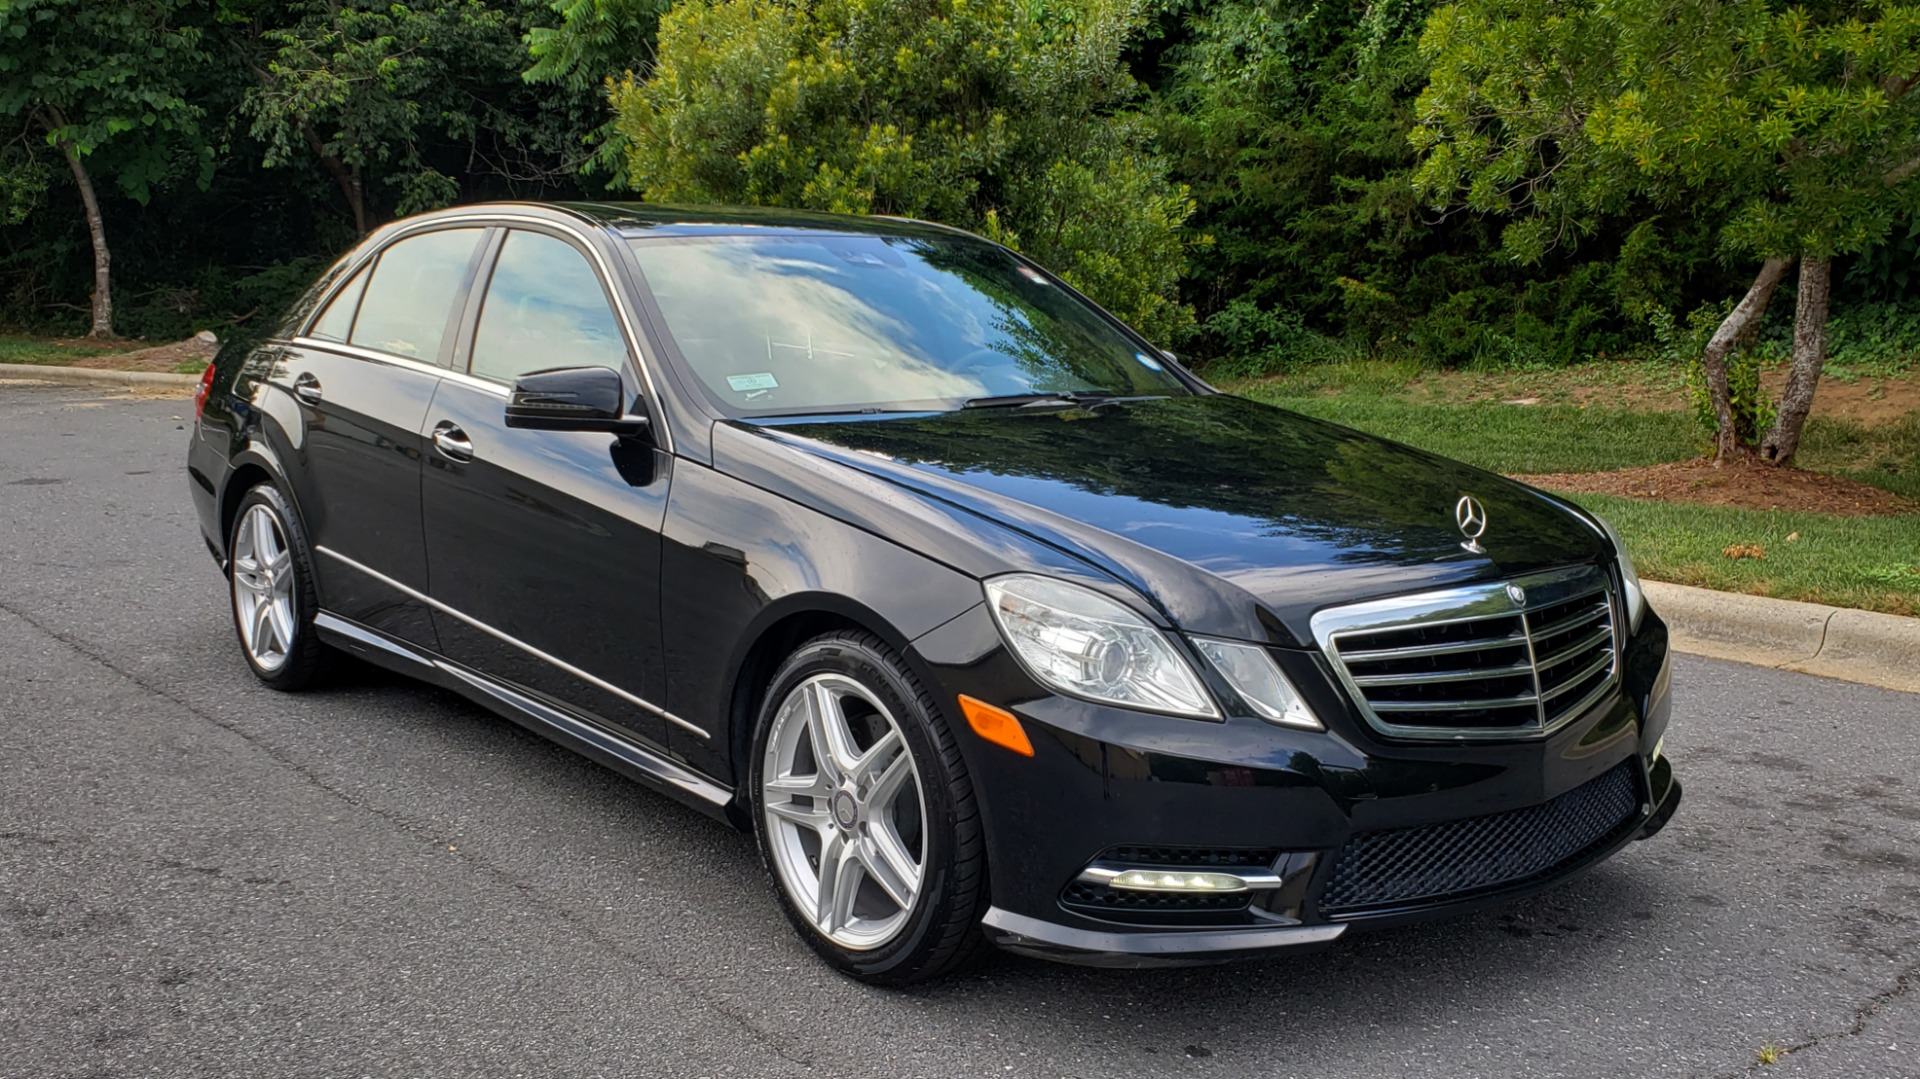 Used 2013 Mercedes-Benz E-CLASS E 350 SPORT / PREM PKG / NAV / SUNROOF / LANE TRACKING / BSA for sale $17,995 at Formula Imports in Charlotte NC 28227 4